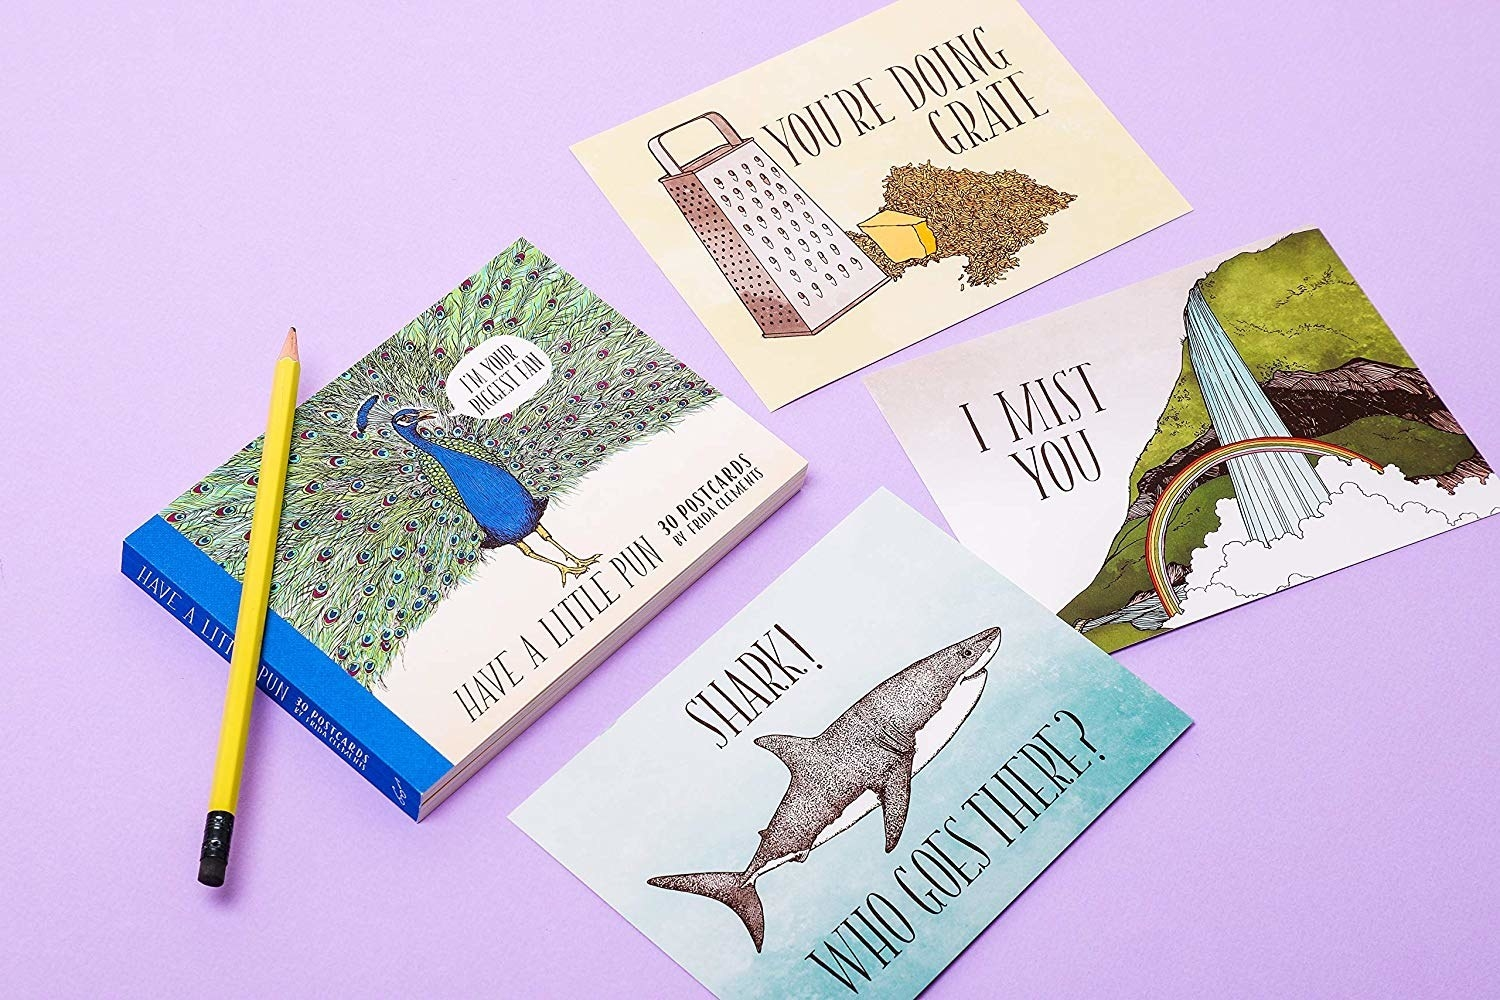 """Booklet of greeting cards with random illustrations and puns. A cheese grater says """"you're doing grate"""" a waterfall says """"i mist you"""" and a shark says """"shark! who goes there?"""""""